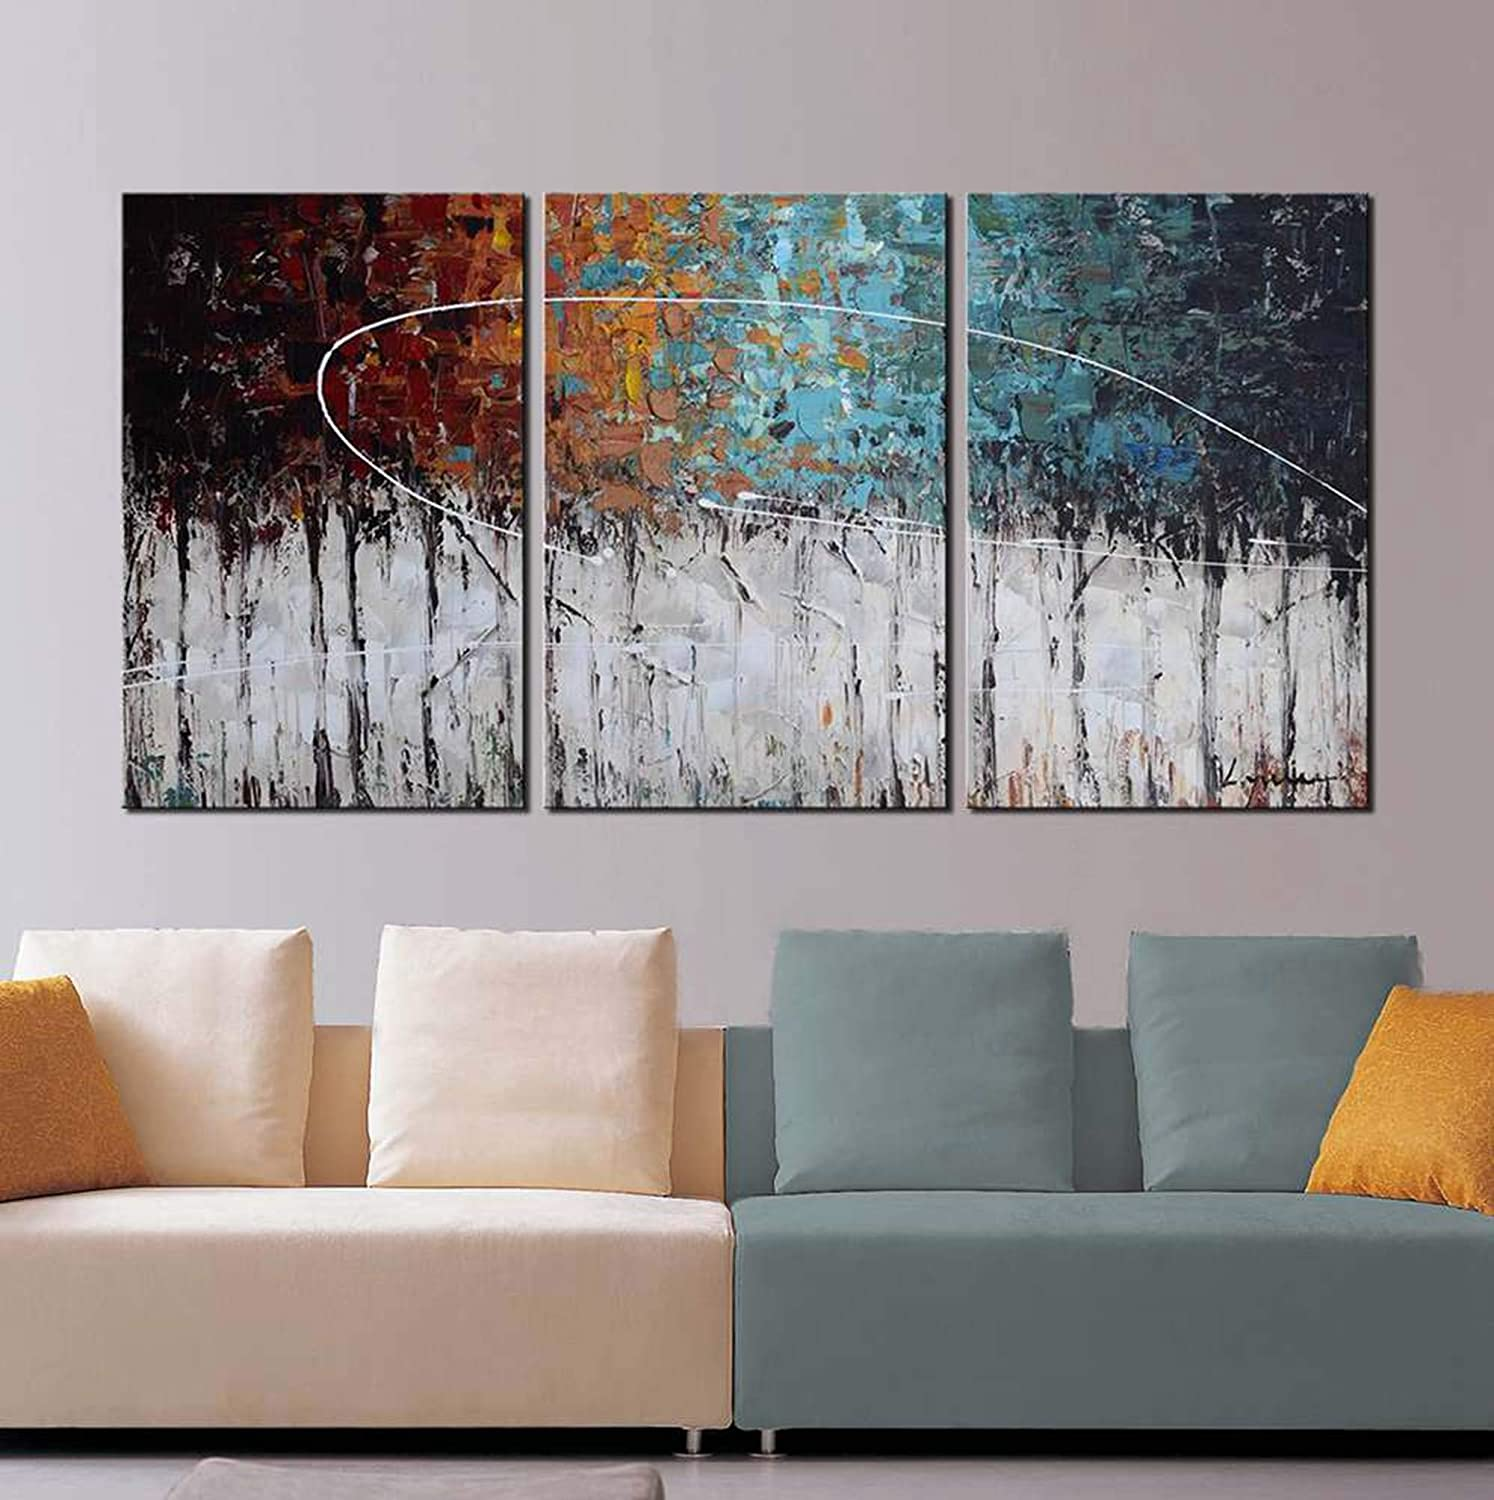 Amazon com artland hand painted color forest 3 piece gallery wrapped abstract oil painting on canvas wall art decor home decoration 24x48 inches paintings